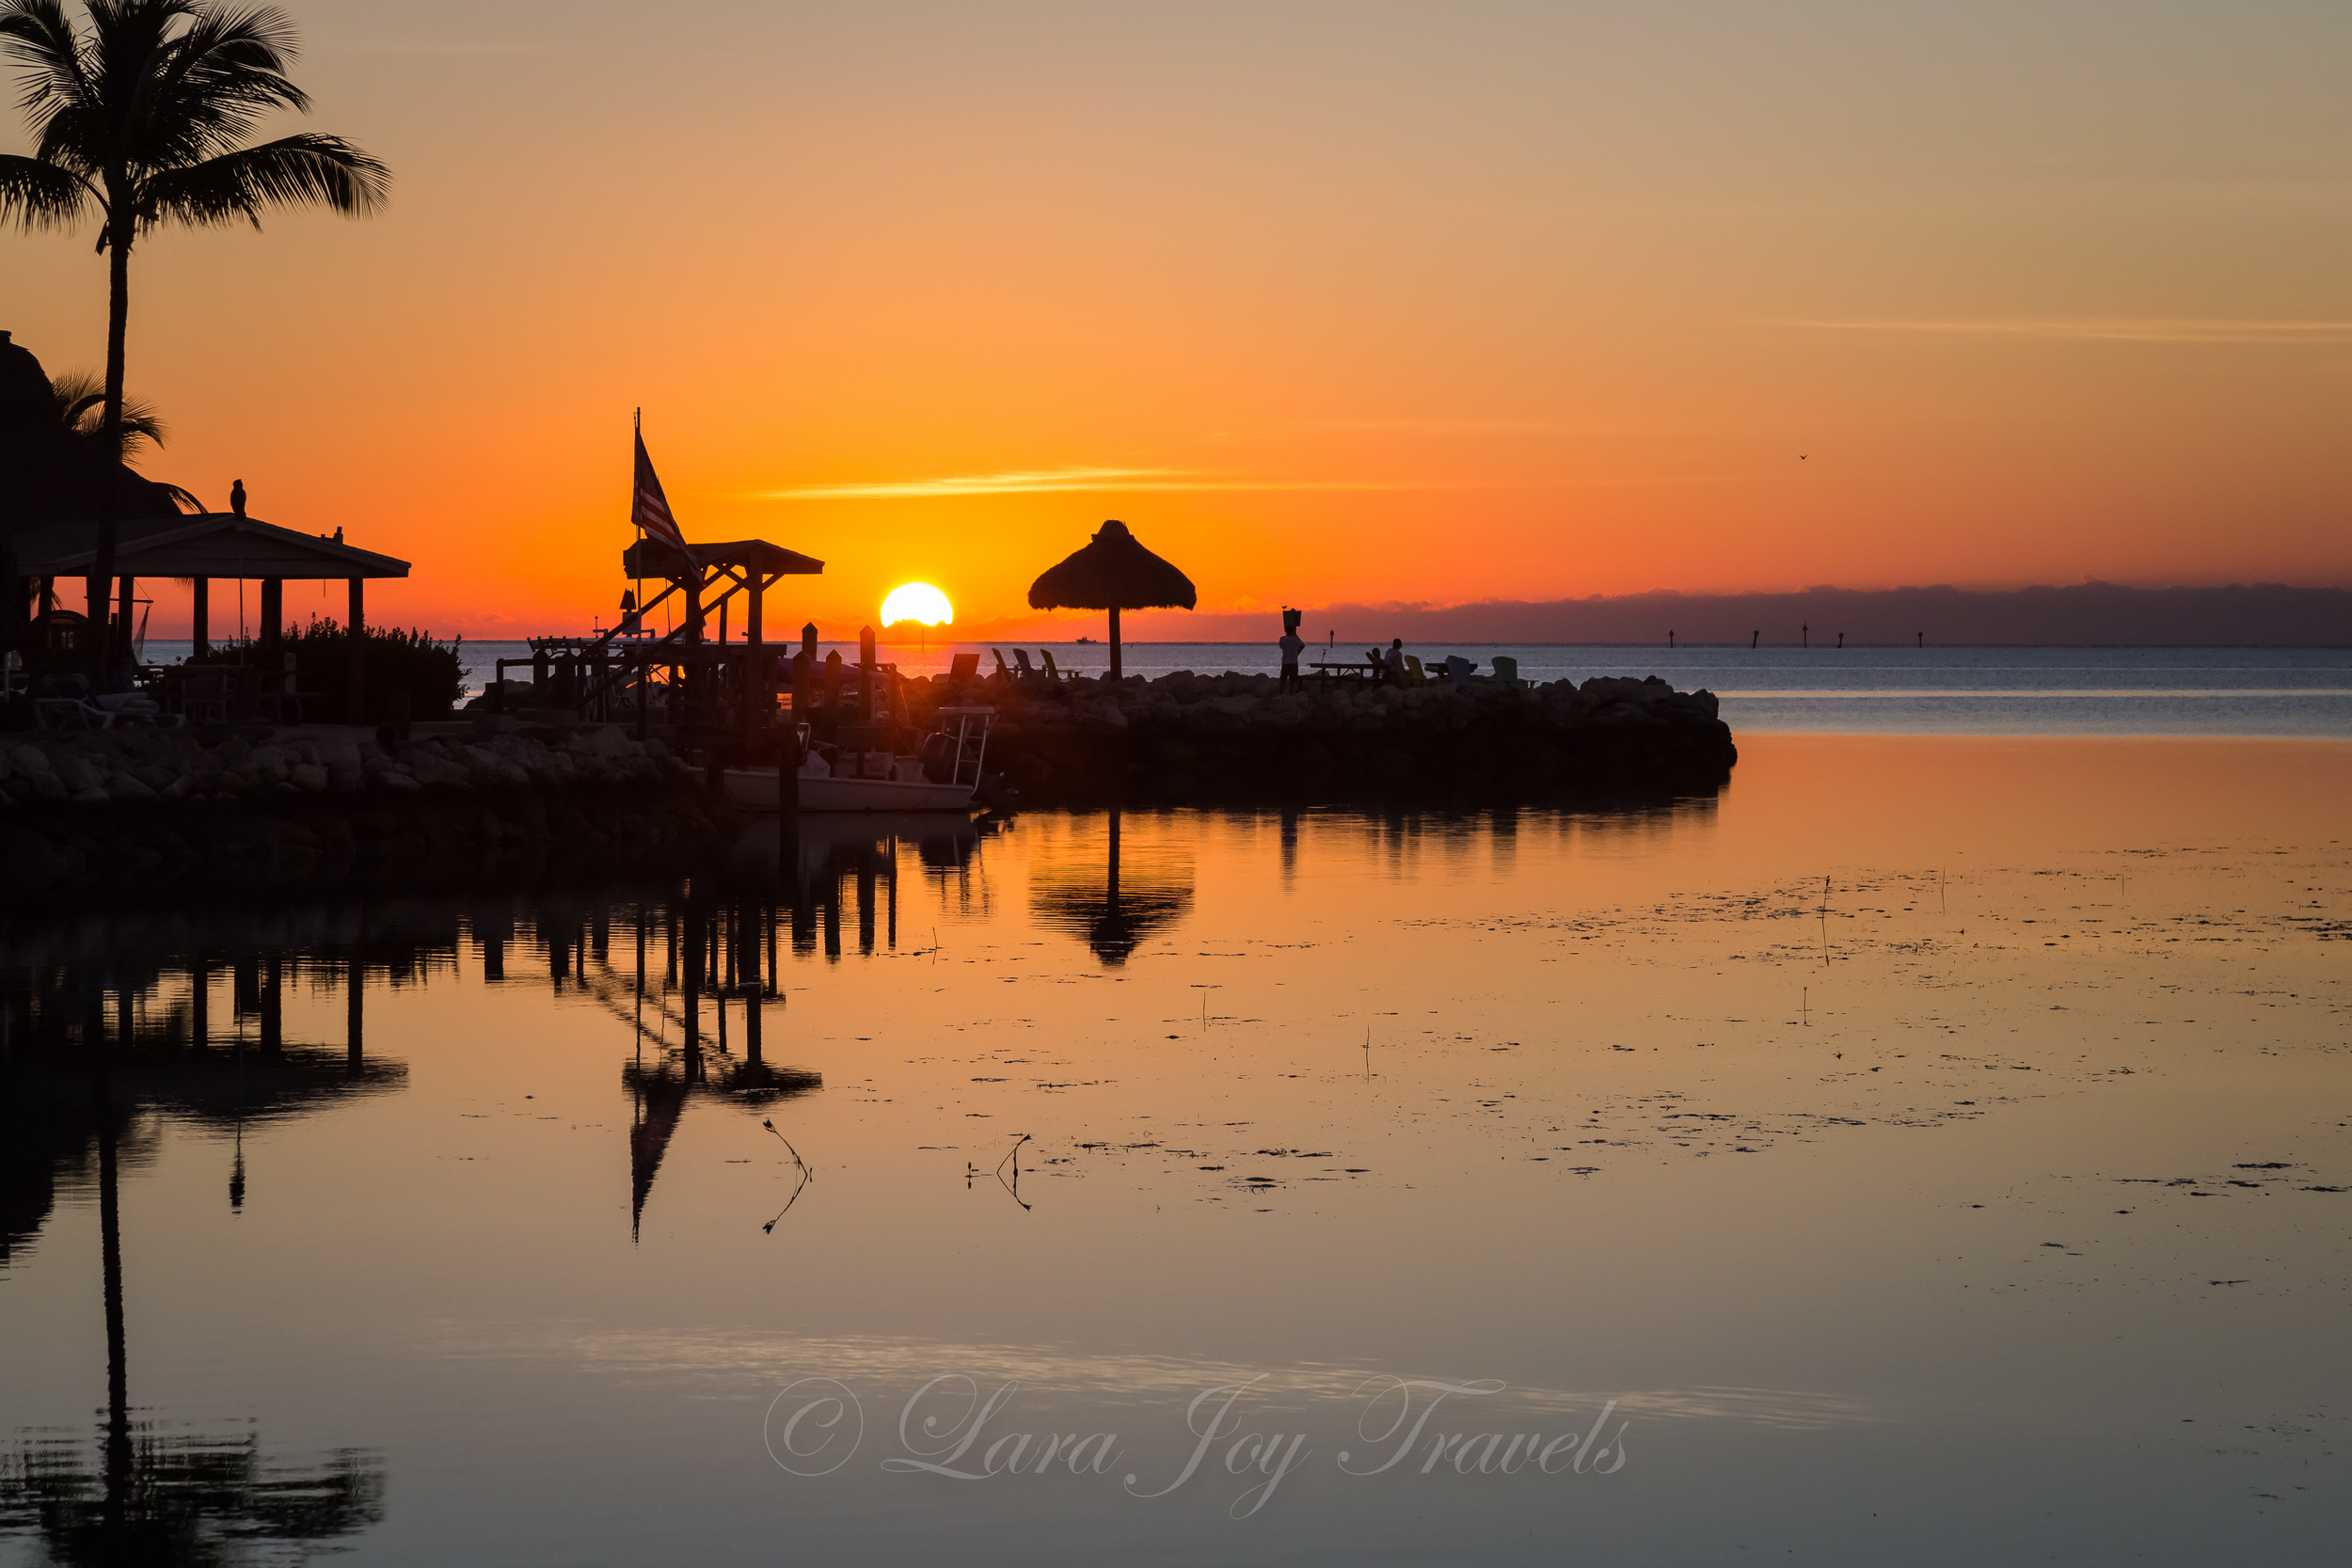 I set up on the beach at Drop Anchor and got this fun shot of the sun coming up over the horizon.